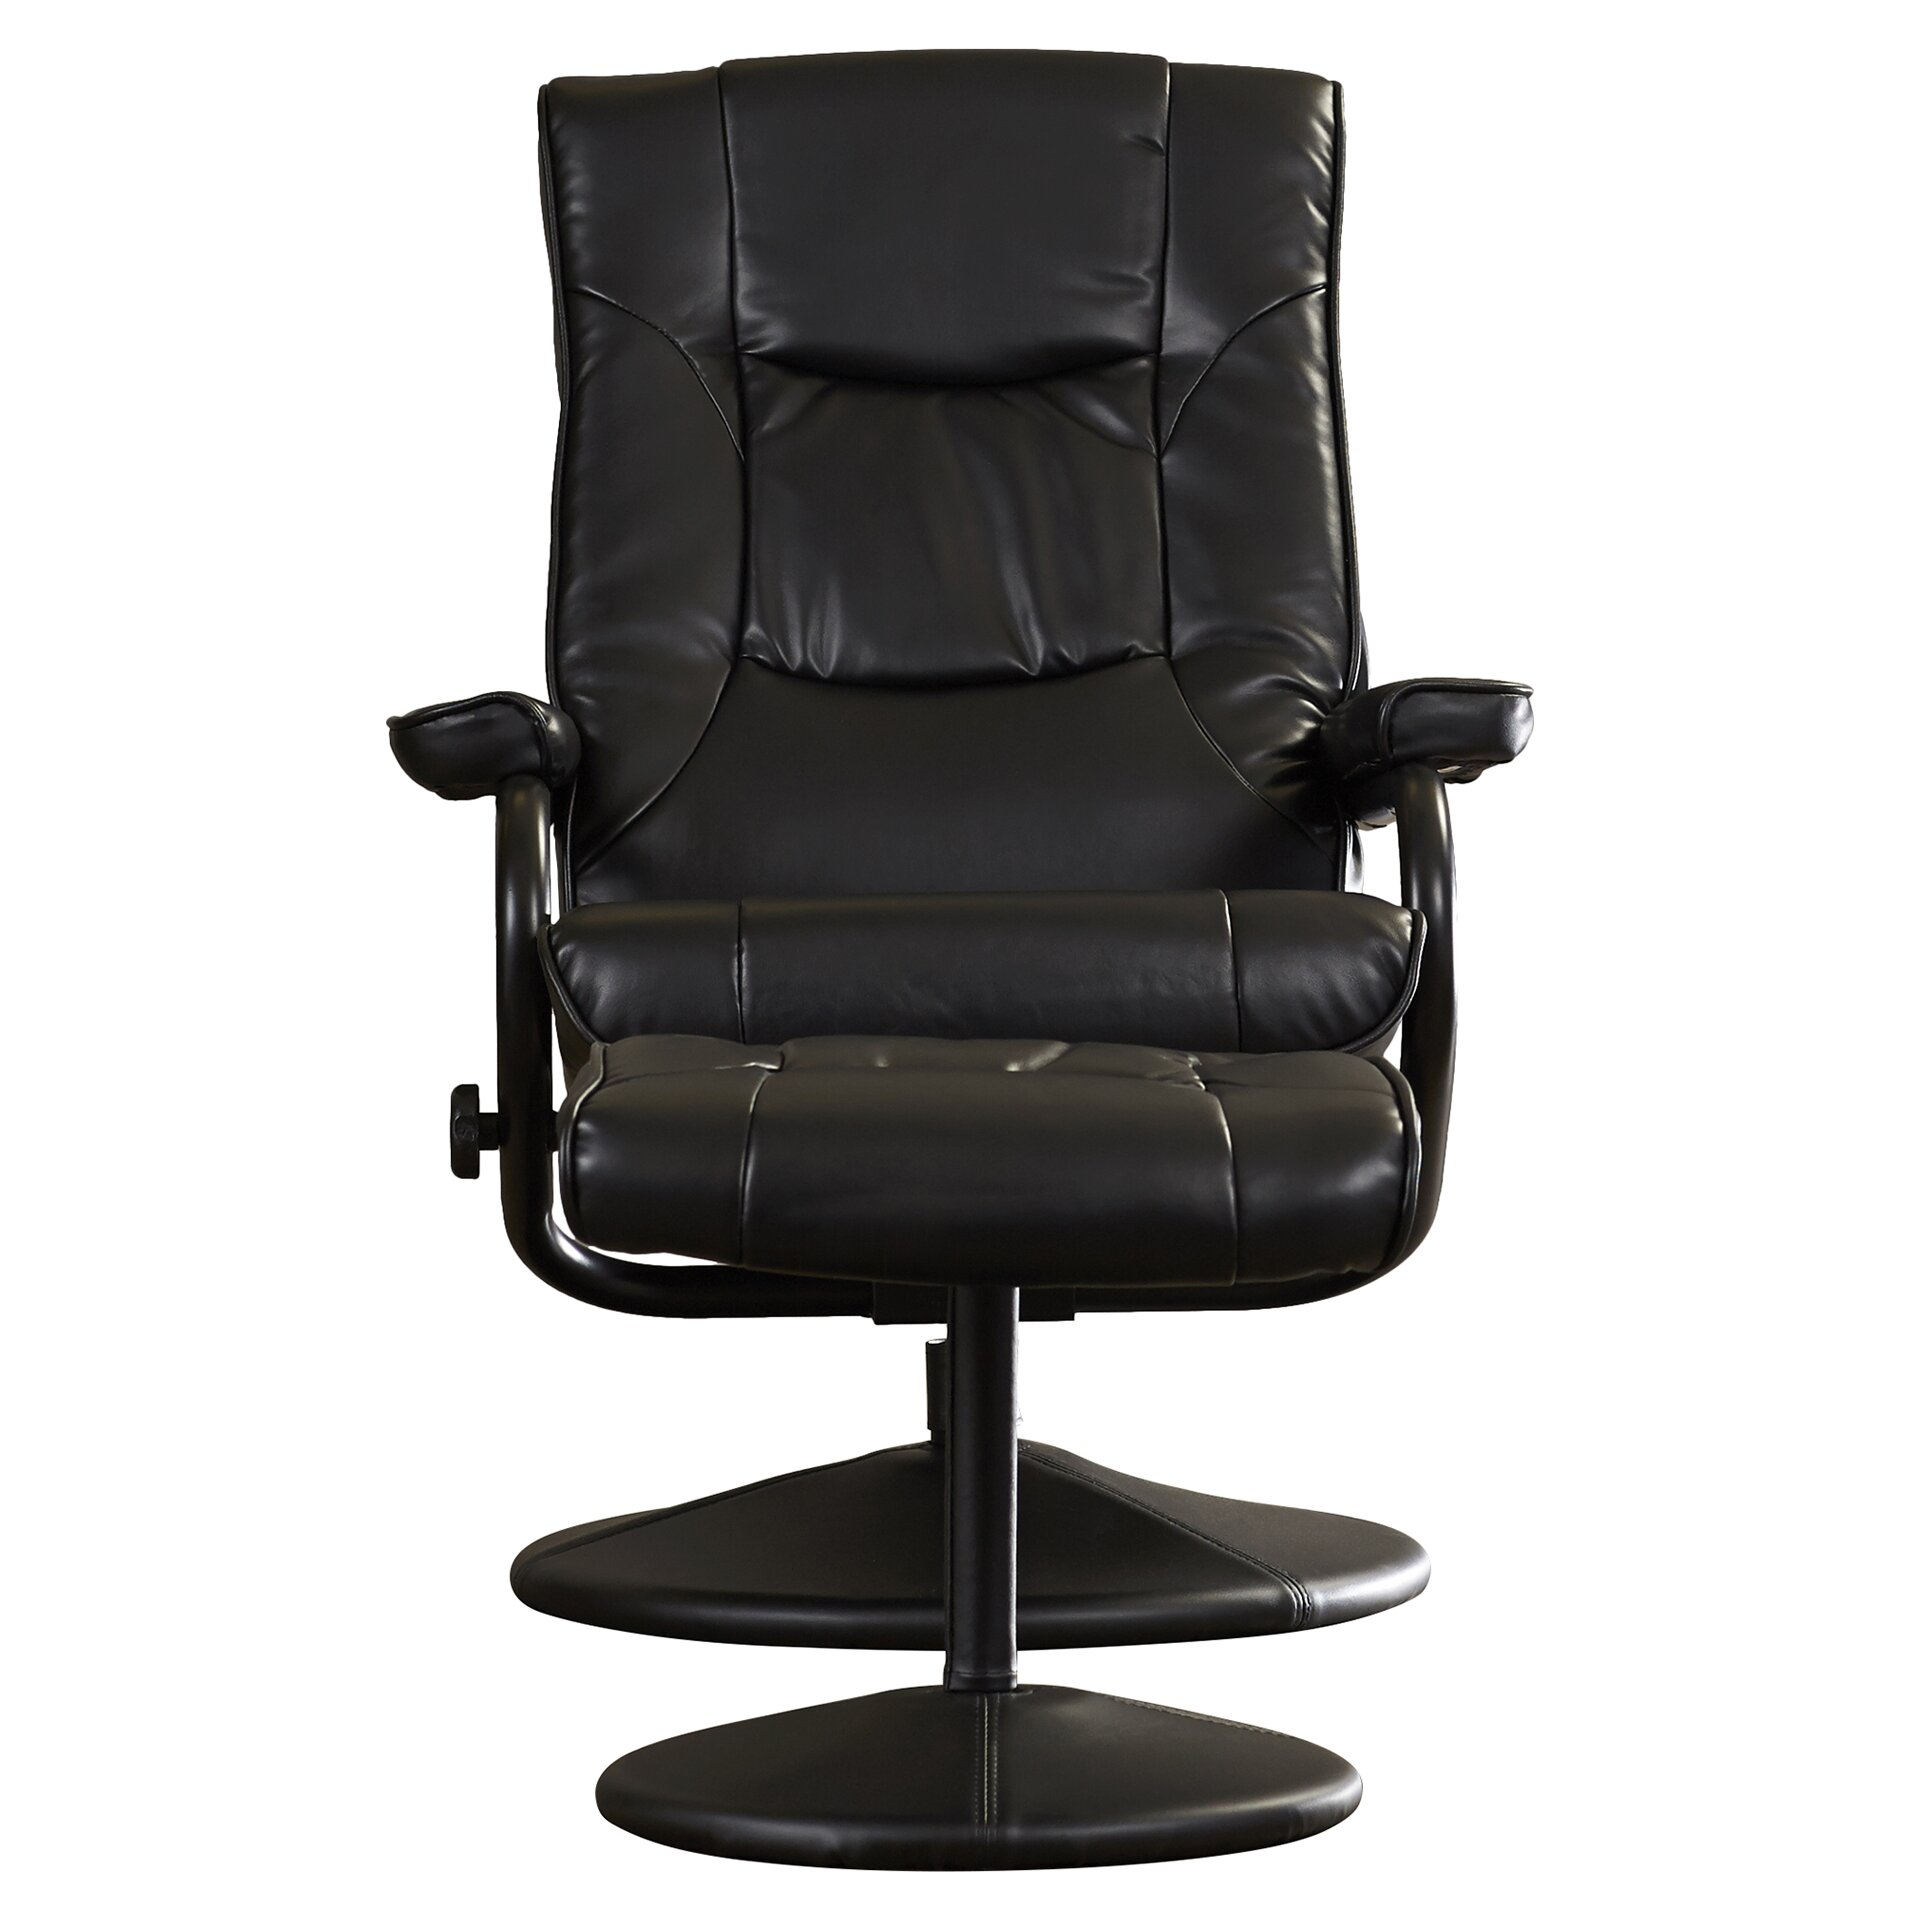 Charlton Home Soft Leather Reclining Office Chair and Ottoman Set – Office Chair Reclining